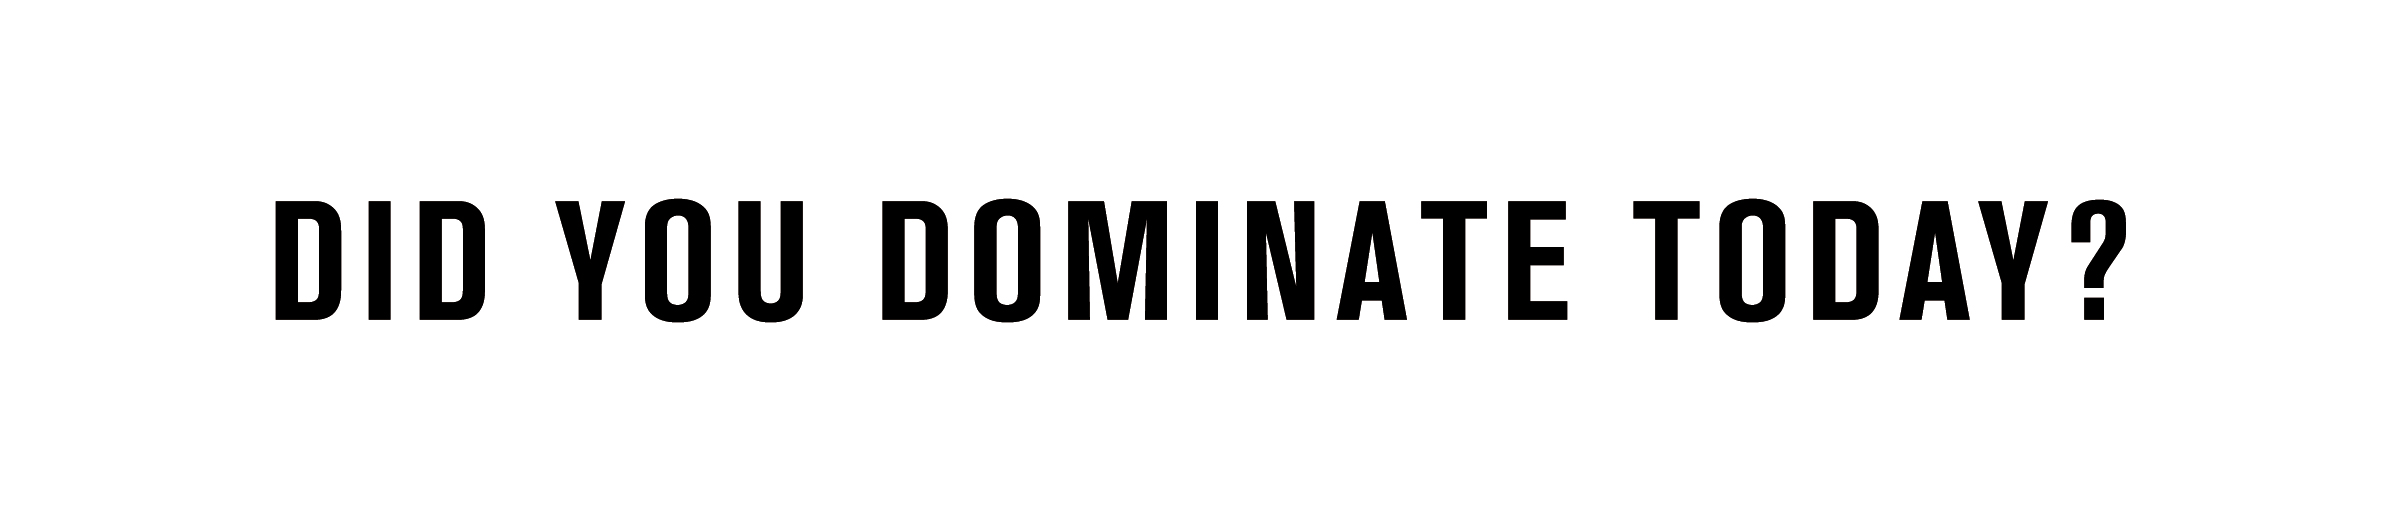 DID YOU DOMINATE TODAY?